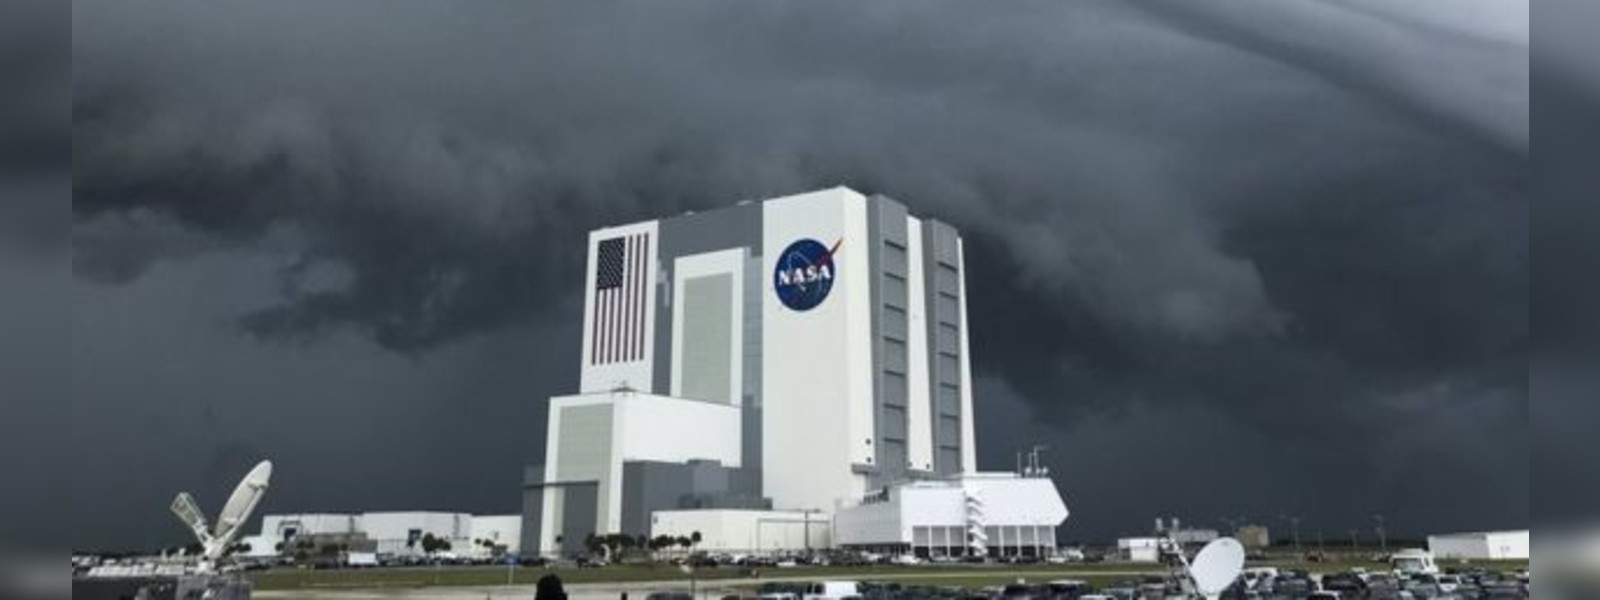 Nasa SpaceX launch called off owing to adverse weather